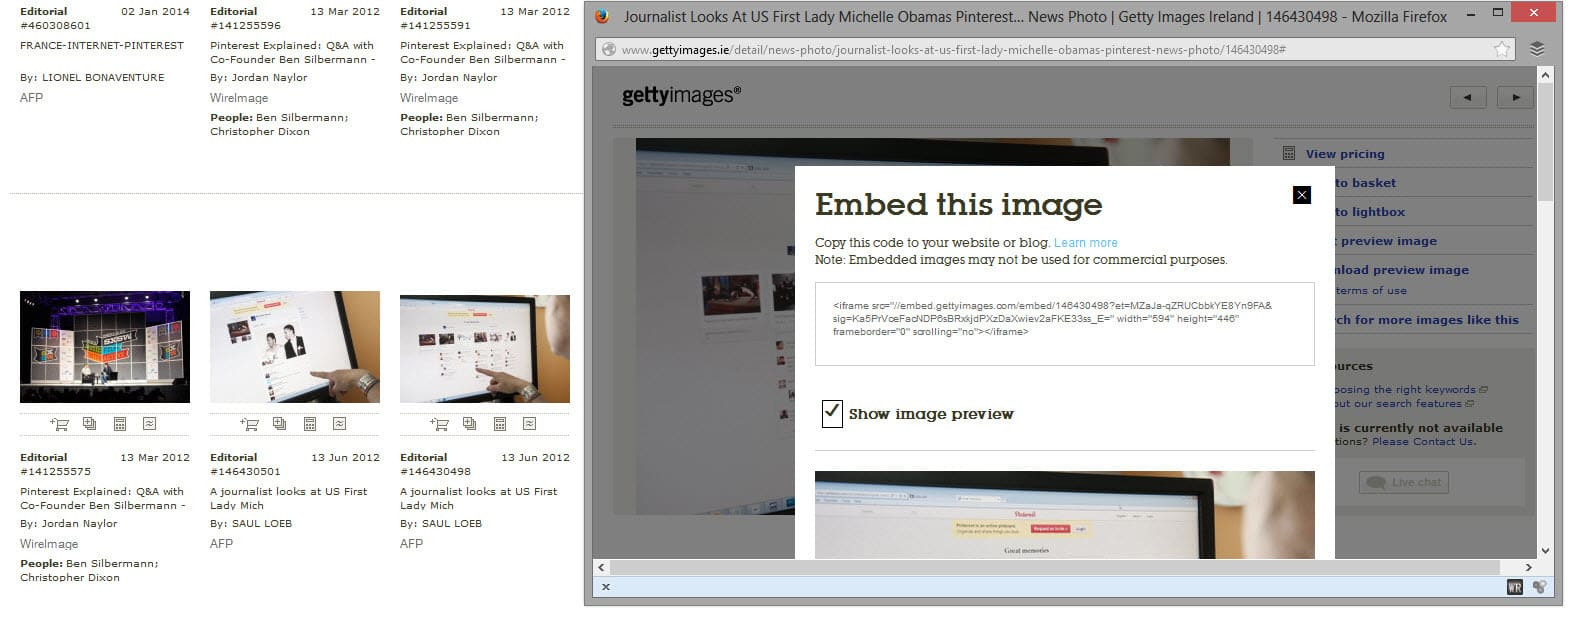 Getty Images enables digital publishers to embed images for free